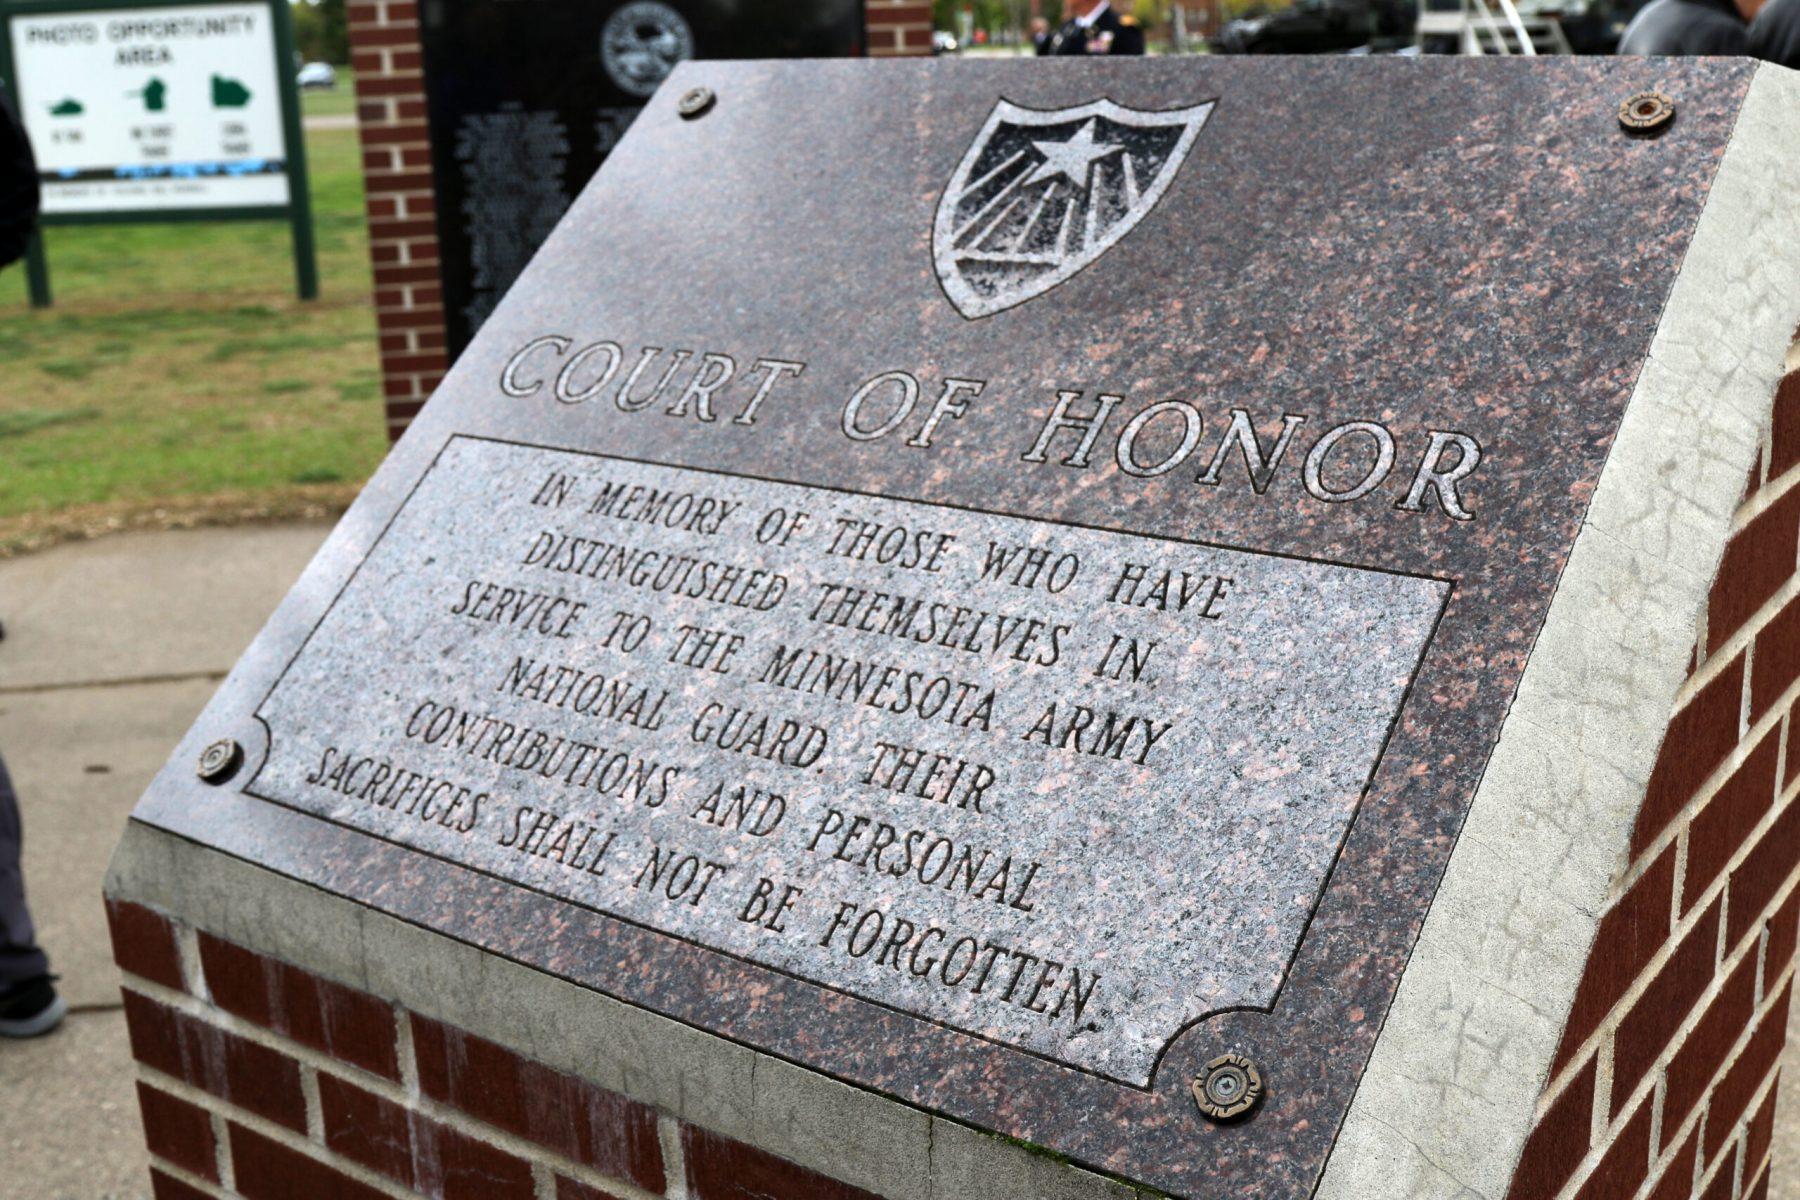 Court of Honor memorial plaque located at the Military Muesem on Camp Ripley.